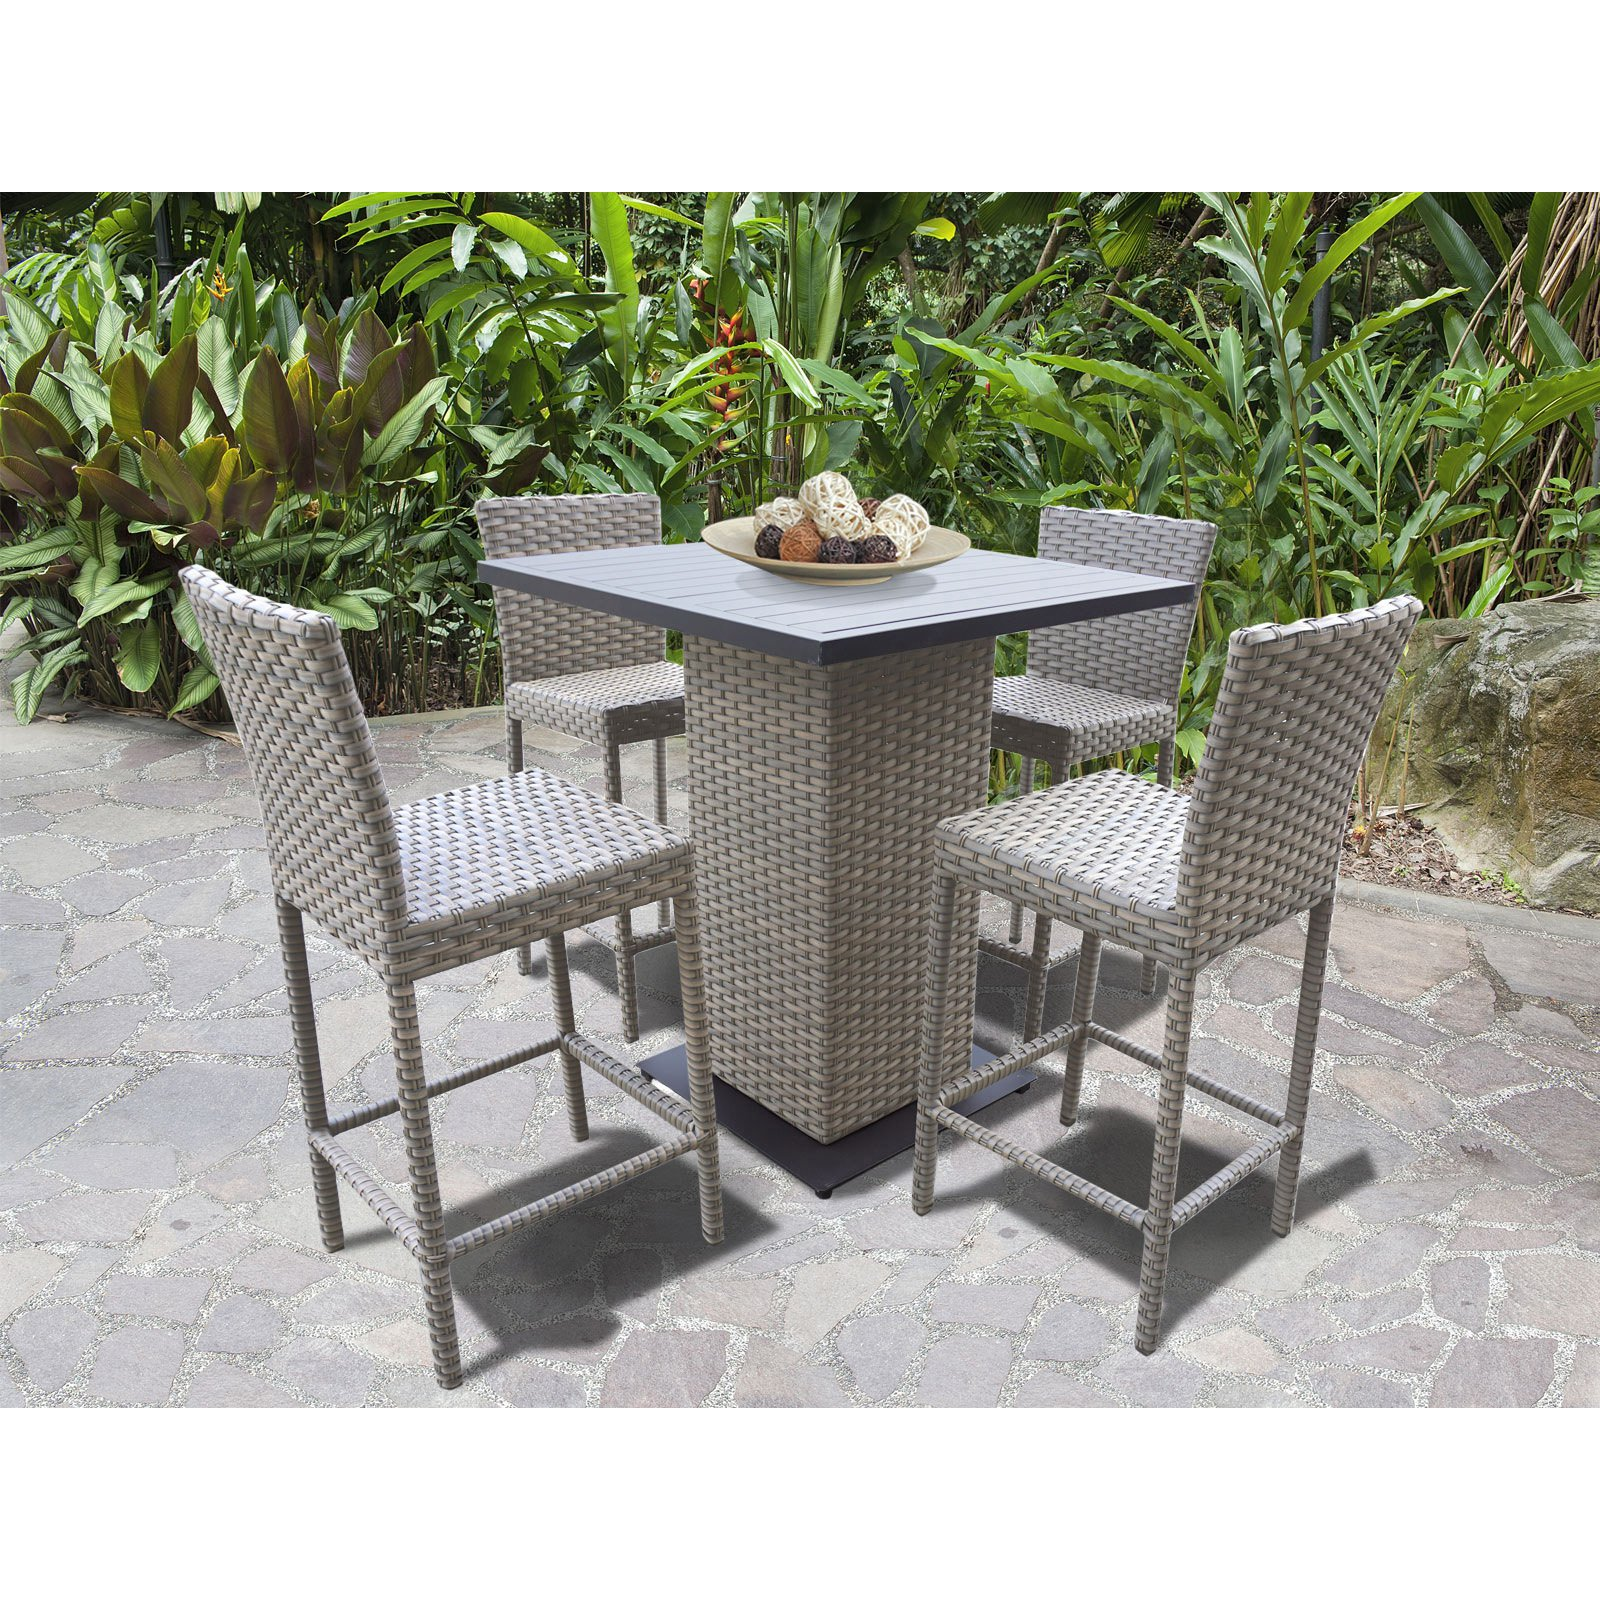 TK Classics Oasis Wicker 5 Piece Outdoor Pub Table Set